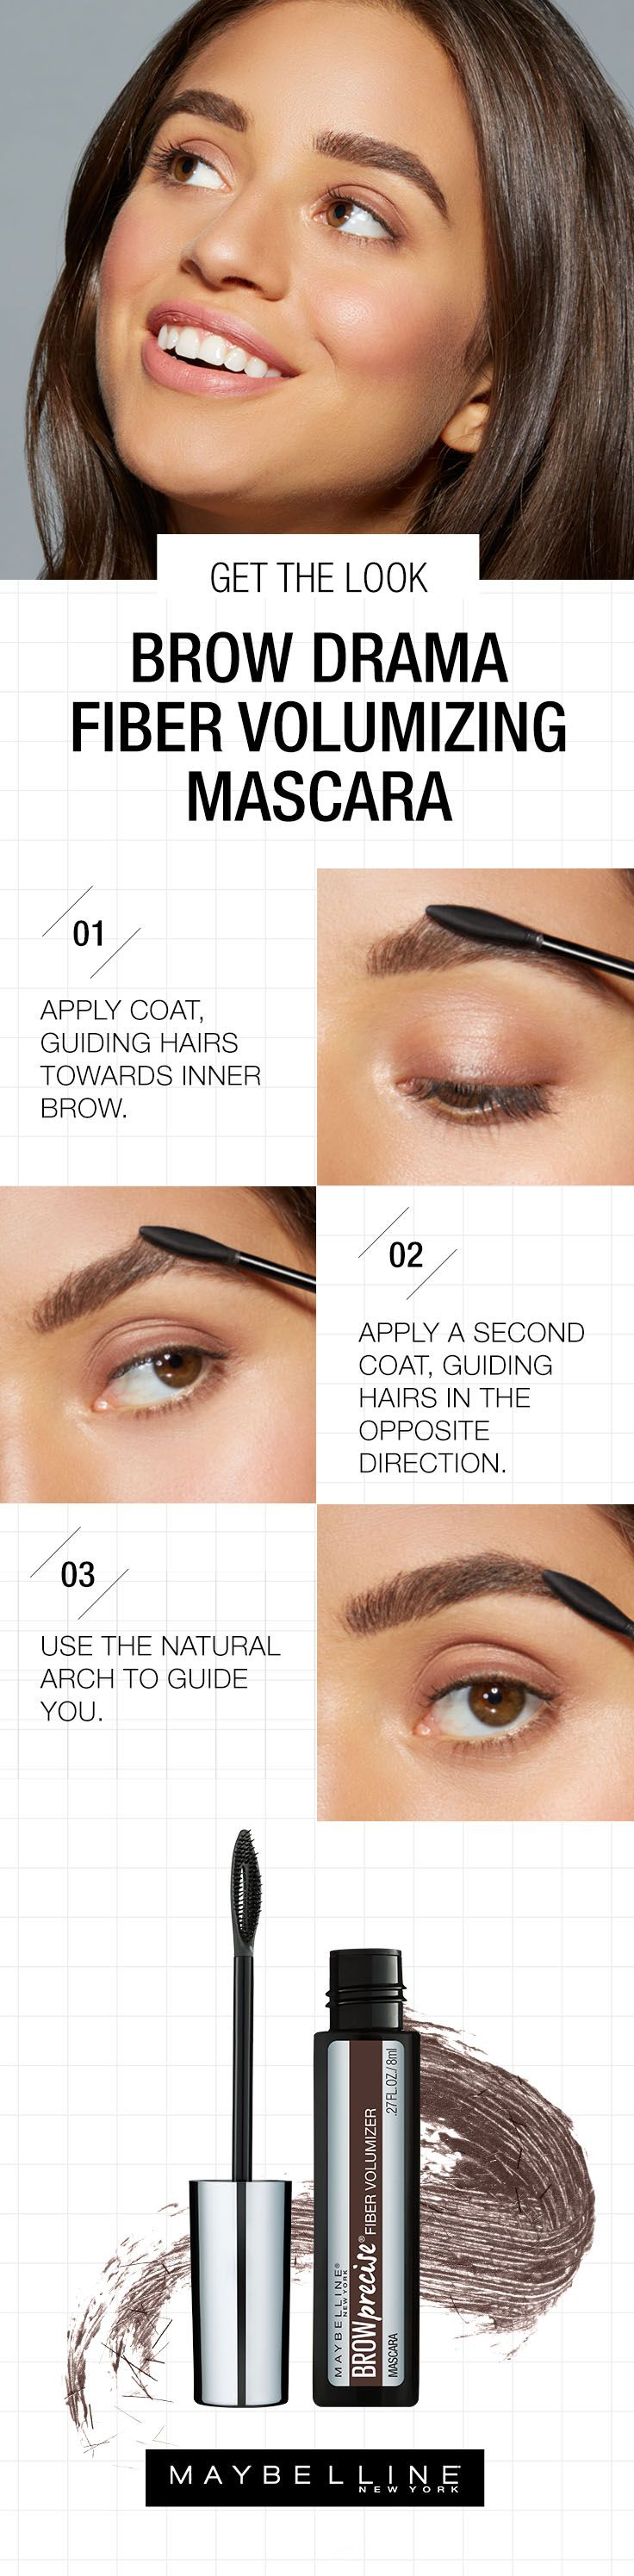 Build thick, lush arches with Maybelline's Brow Drama Fiber Volumizing Mascara. It's easy with this step by step eyebrow tutorial. Work outward and towards the tail. Instantly, the hair-like fibers will adhere to your own brows, creating a three-dimensional wow effect. Step 1: Lightly brush onto brows with even strokes towards inner brow. Step 2. Apply second coat, guiding hairs in the opposite direction. Step 3: Use the natural arch to guide you.